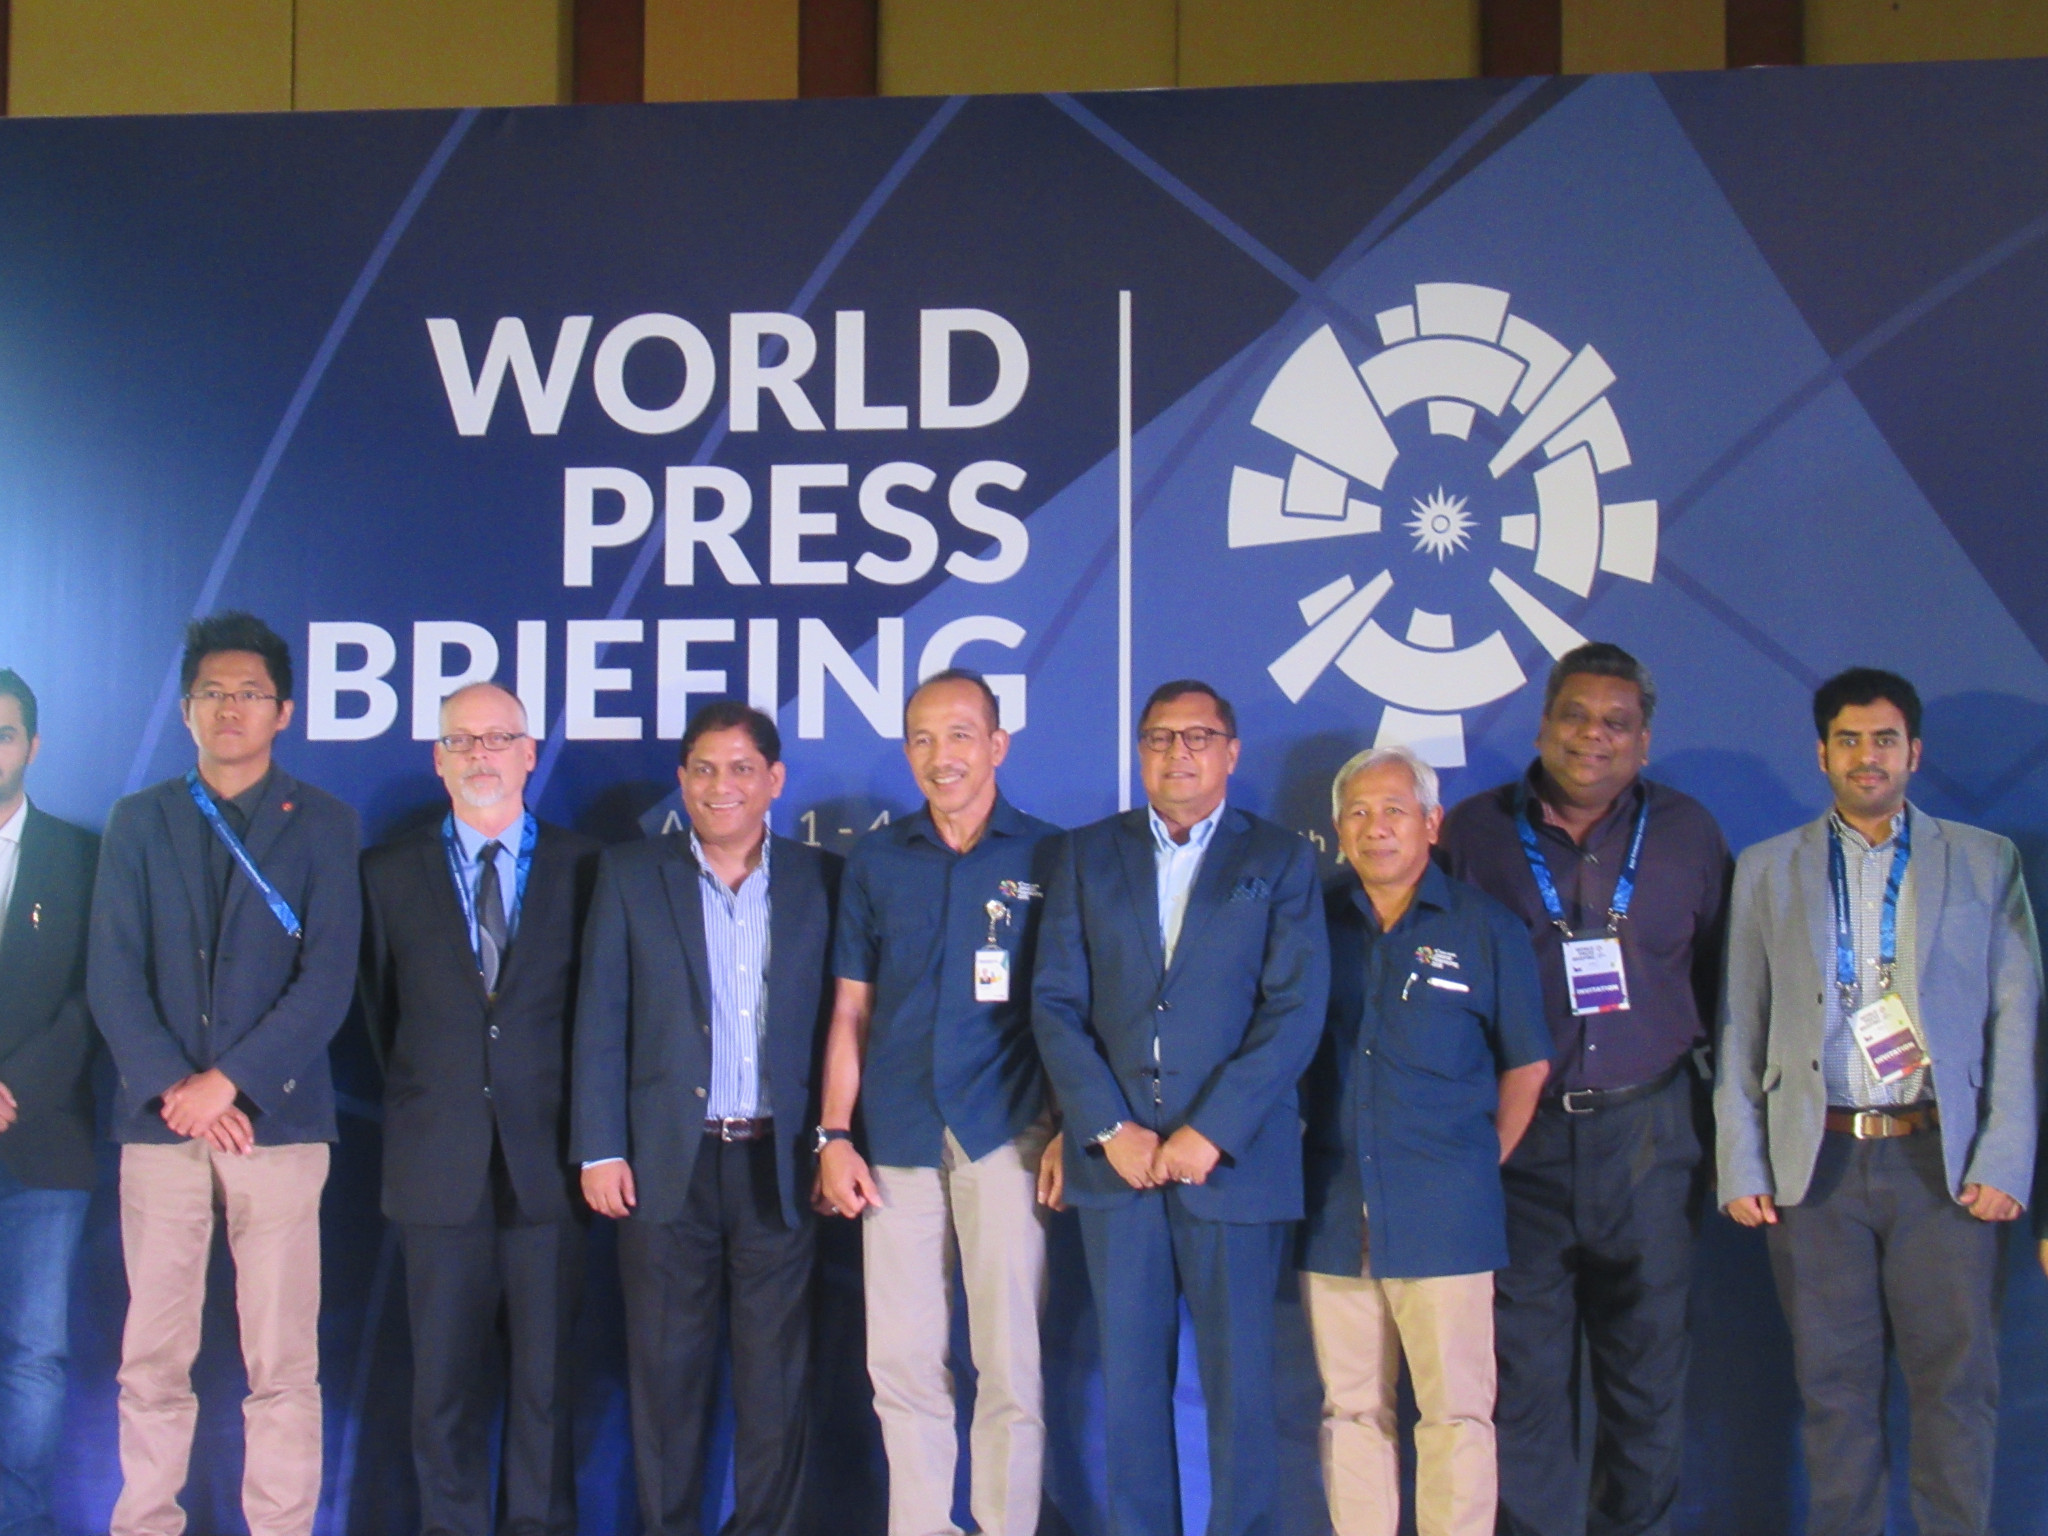 Eris Herryanto, fifth from left, welcomed 170 media members to the World Press Briefing at the Hotel Borobudur in Jakarta ©OCA